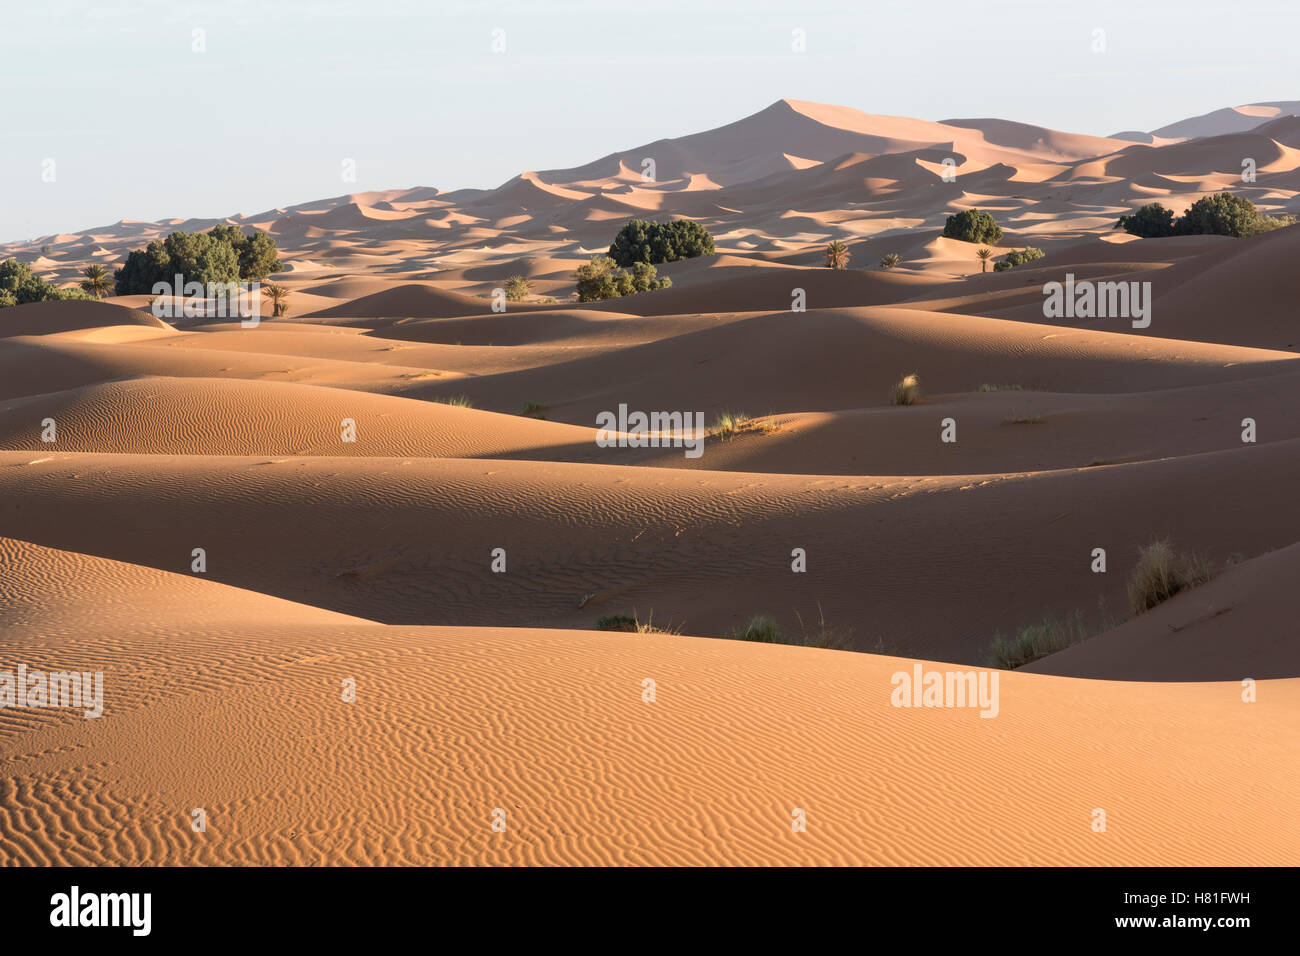 Morocco, Erg Chebbi, sand dunes in the Sahara Desert near Merzouga - Stock Image